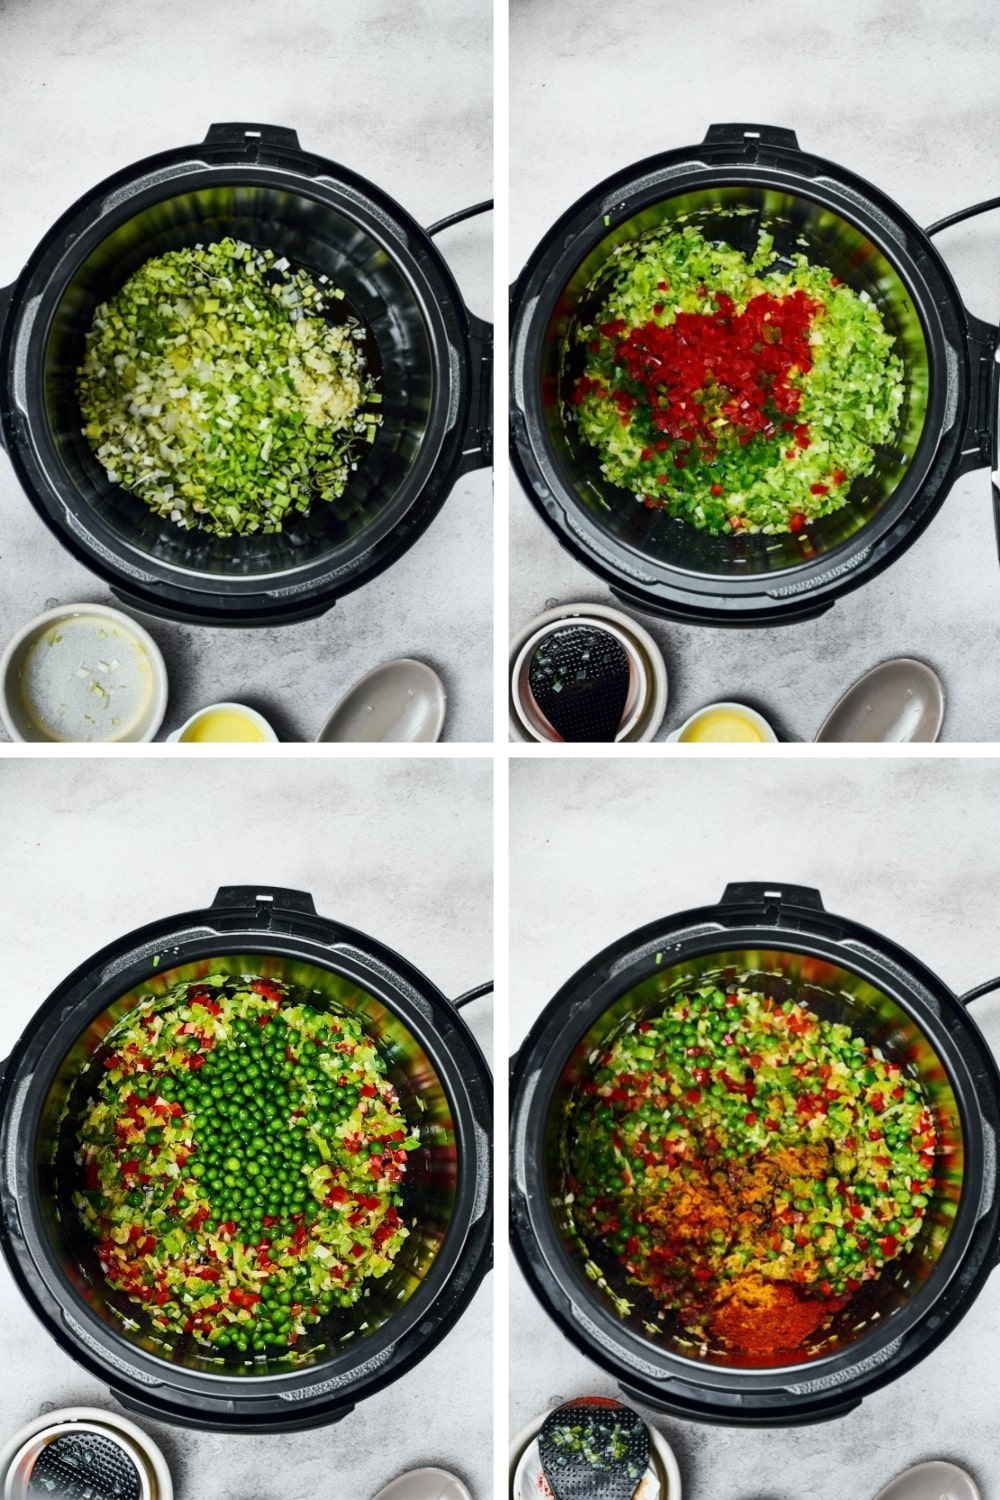 A four way split picture showing the process of making veggies in an instant pot for paella.